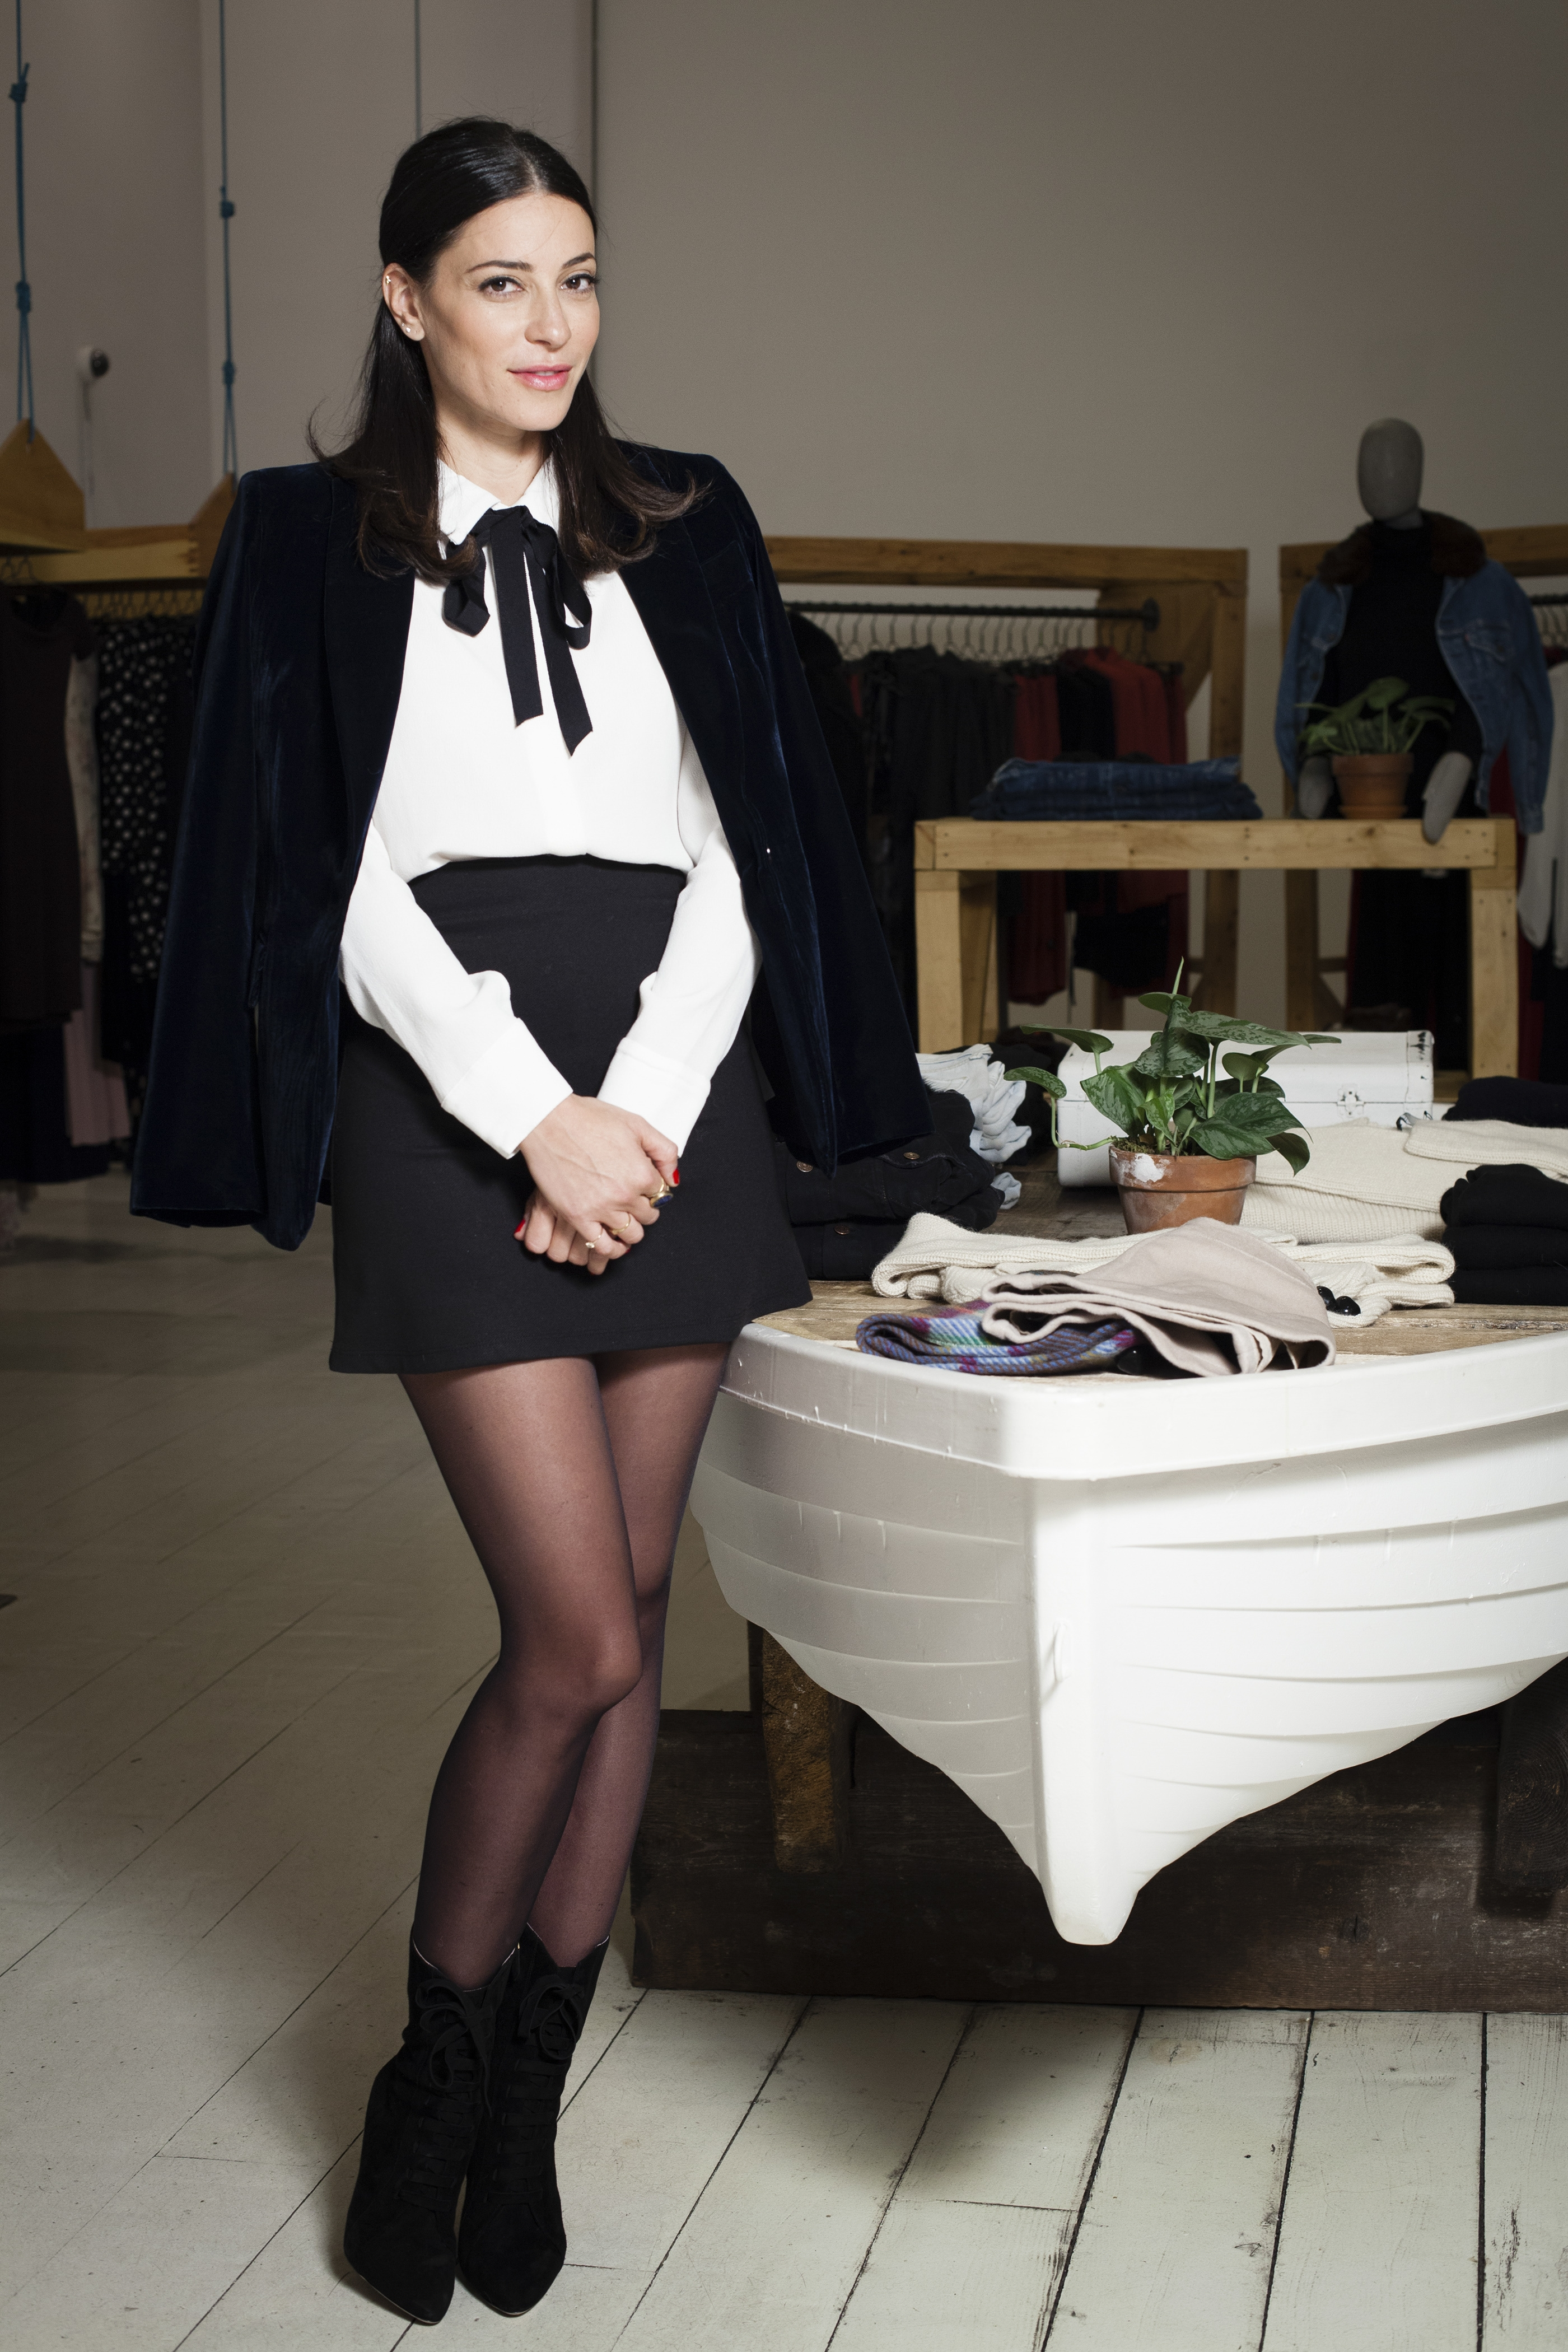 Yael Aflalo, founder of the eco-friendly Reformation clothing label, at her Lower East Side store in New York, Dec. 8, 2014. Reformation spent the first five years of its existence as a modest business, but in the last 12 months it has blown up, emerging as the affordable-ish uniform of 2014 for a certain urban sophisticate who is tall, thin and in her 20s. (Deidre Schoo/The New York Times)